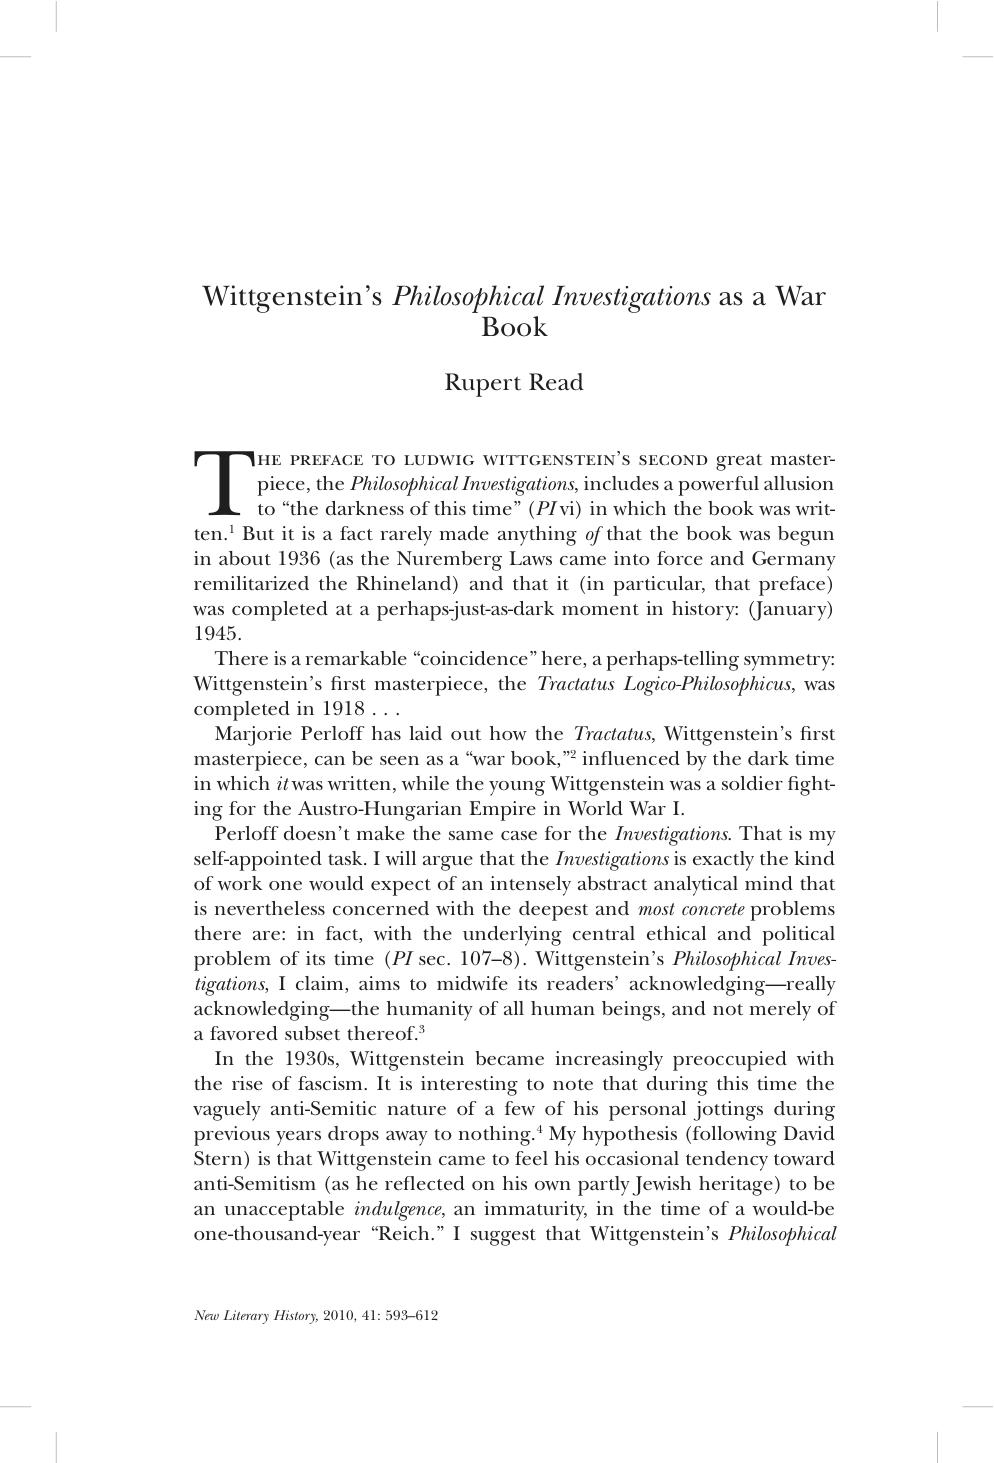 Rupert Read Wittgensteins Philosophical Investigations As A War  Rupert Read Wittgensteins Philosophical Investigations As A War Book  New Literary History